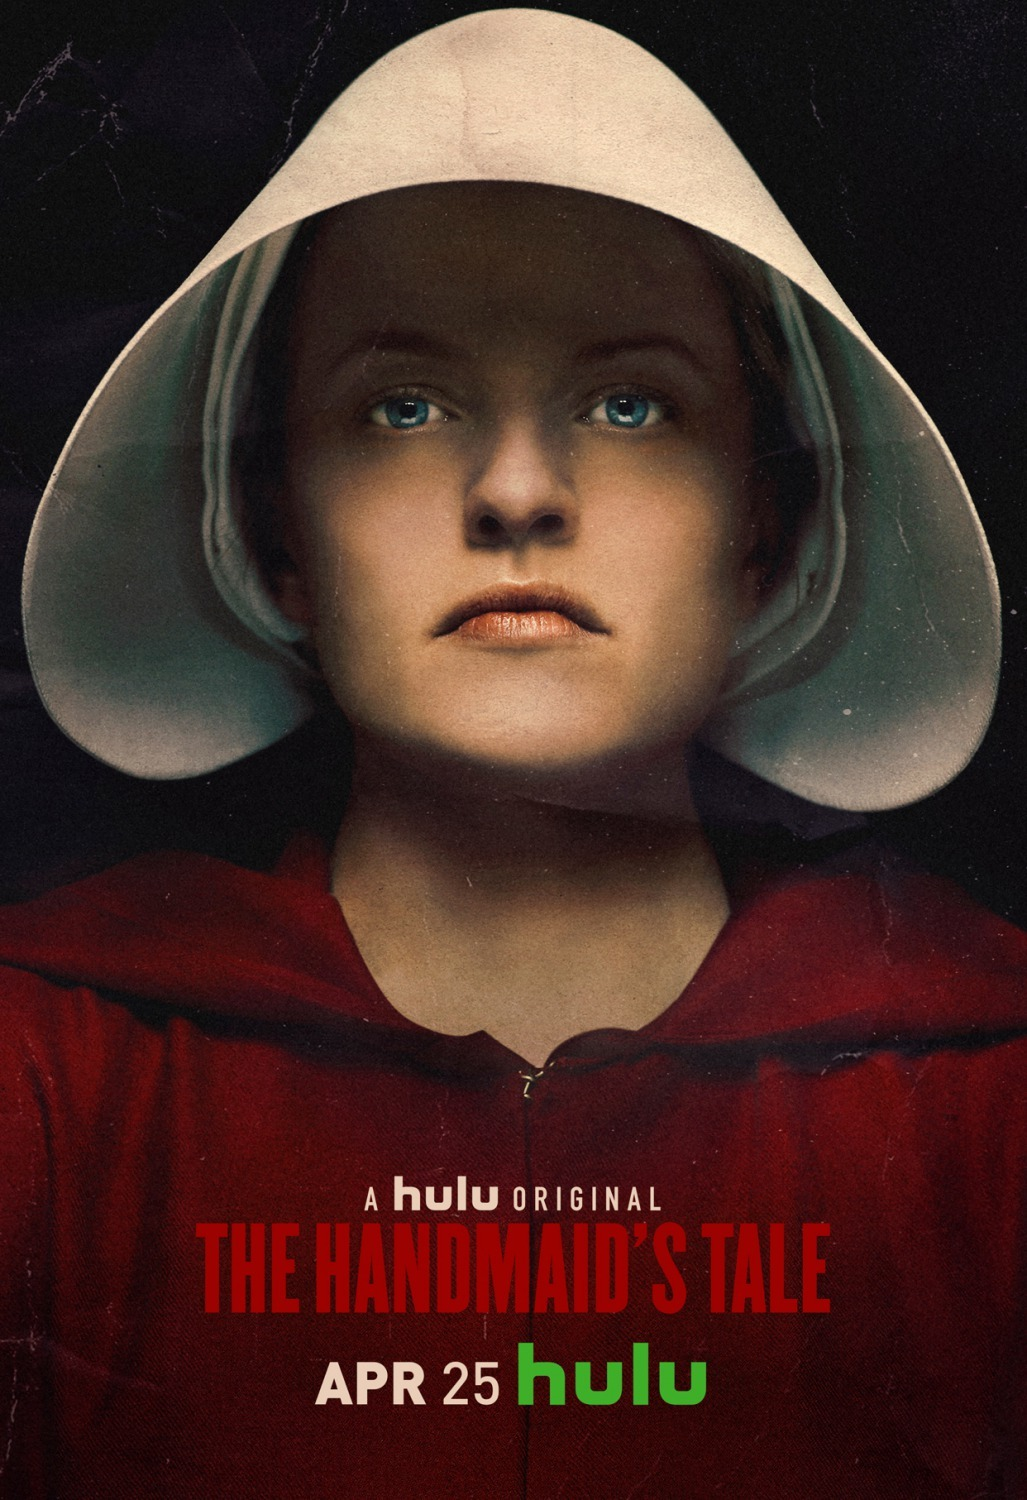 The Handmaid's Tale (2017 series)